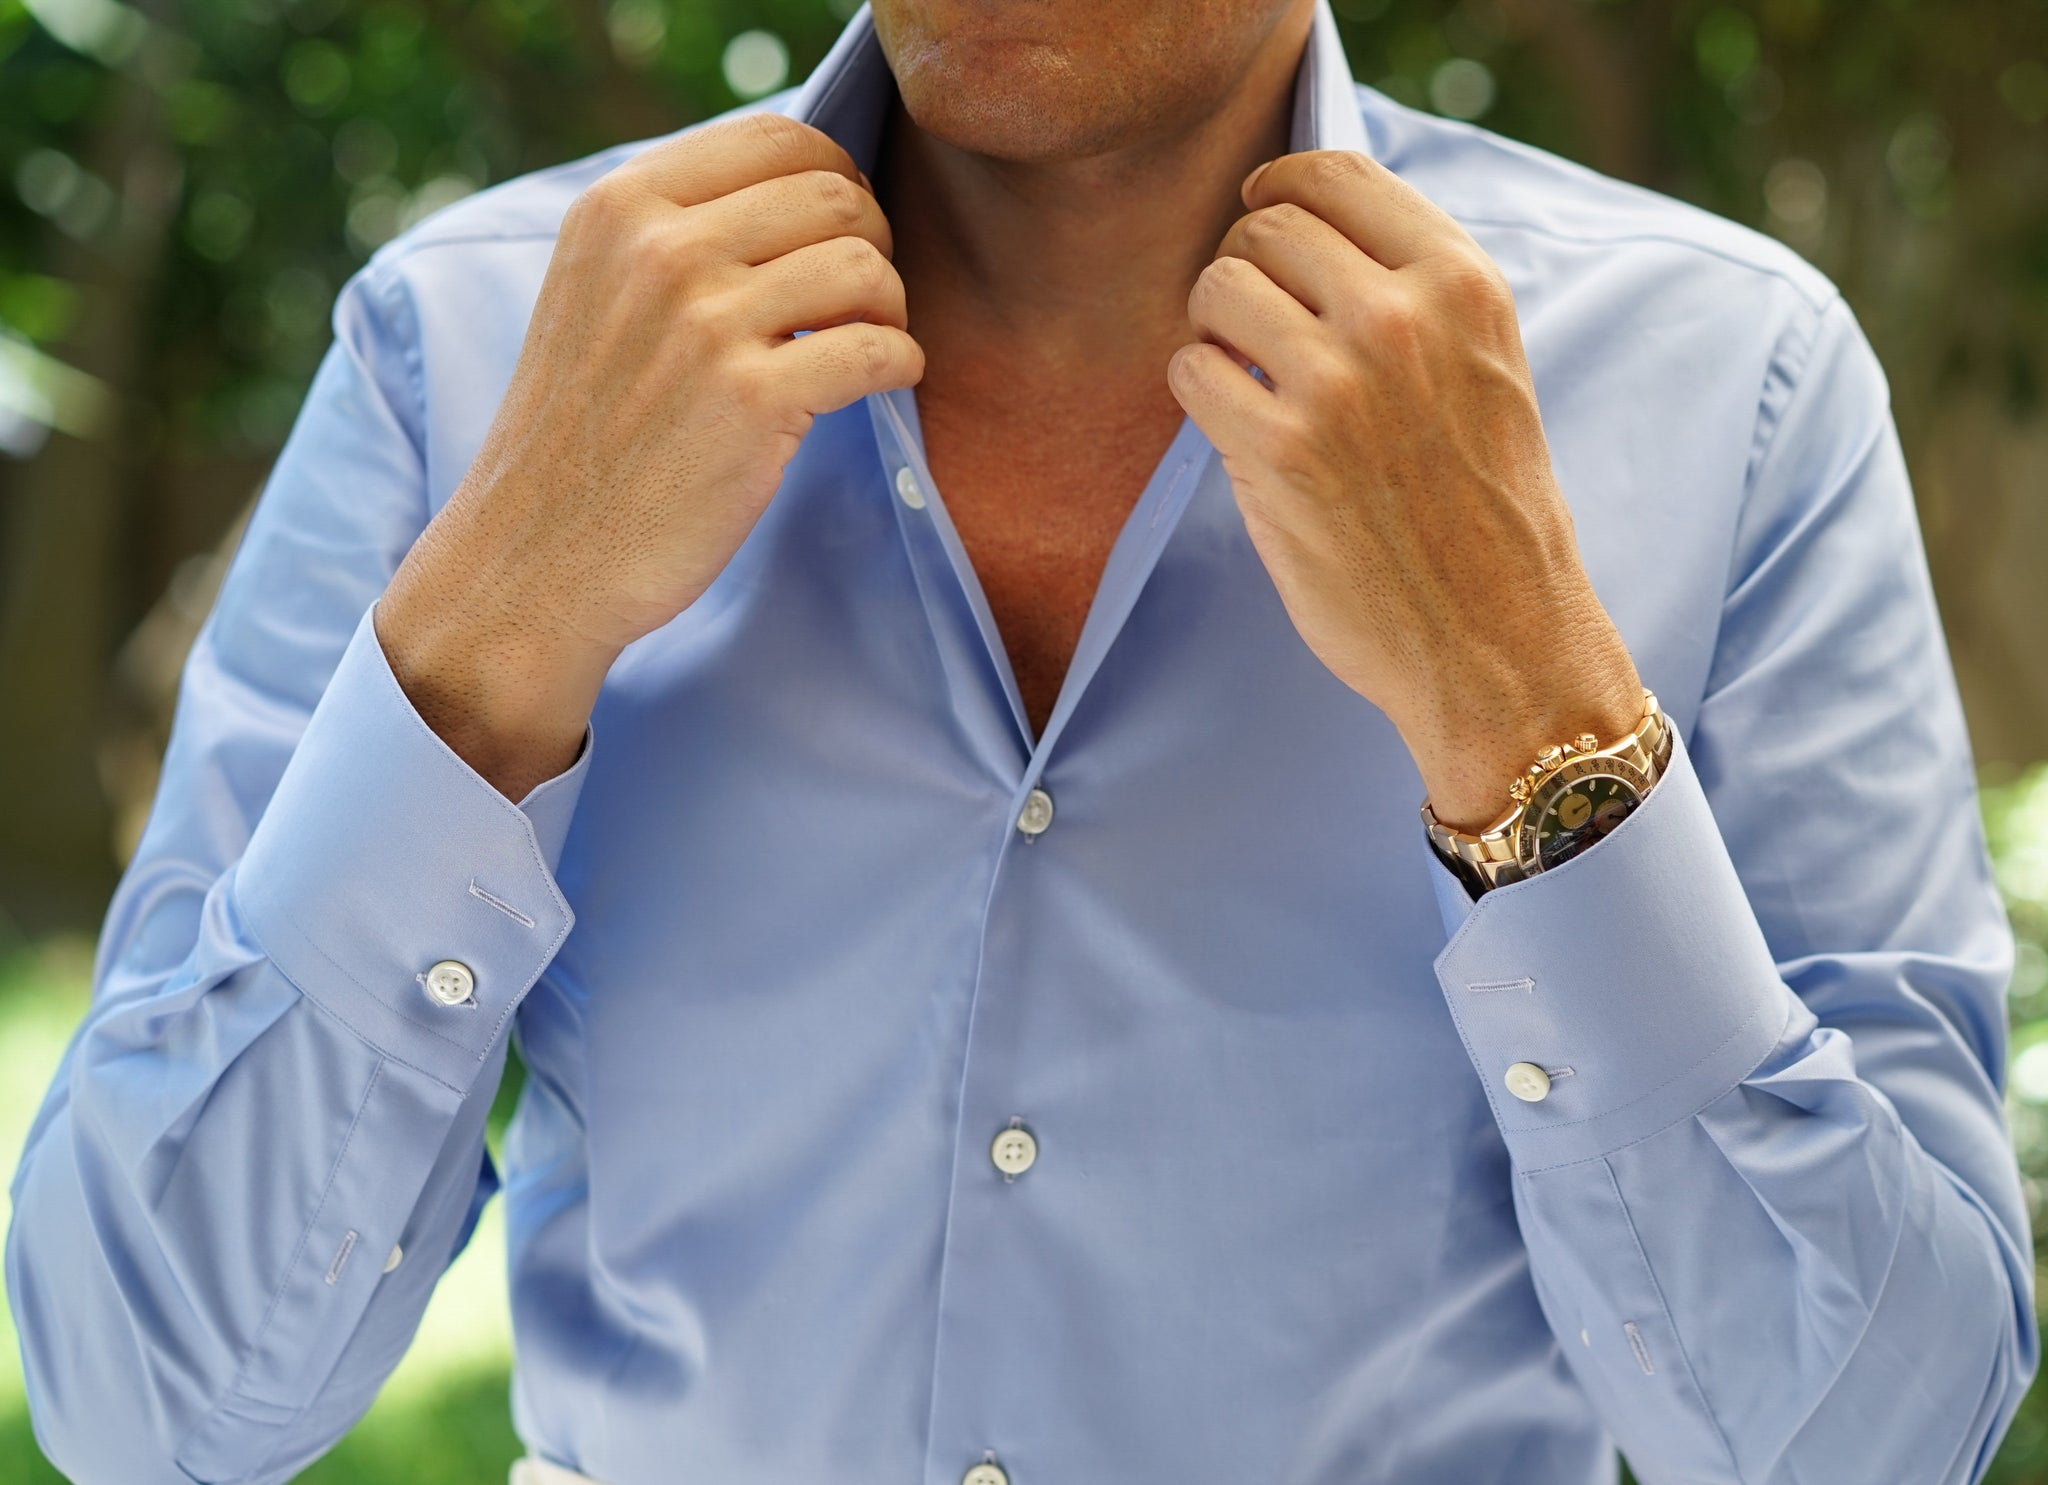 Danielre Timeless Light Blue Shirt